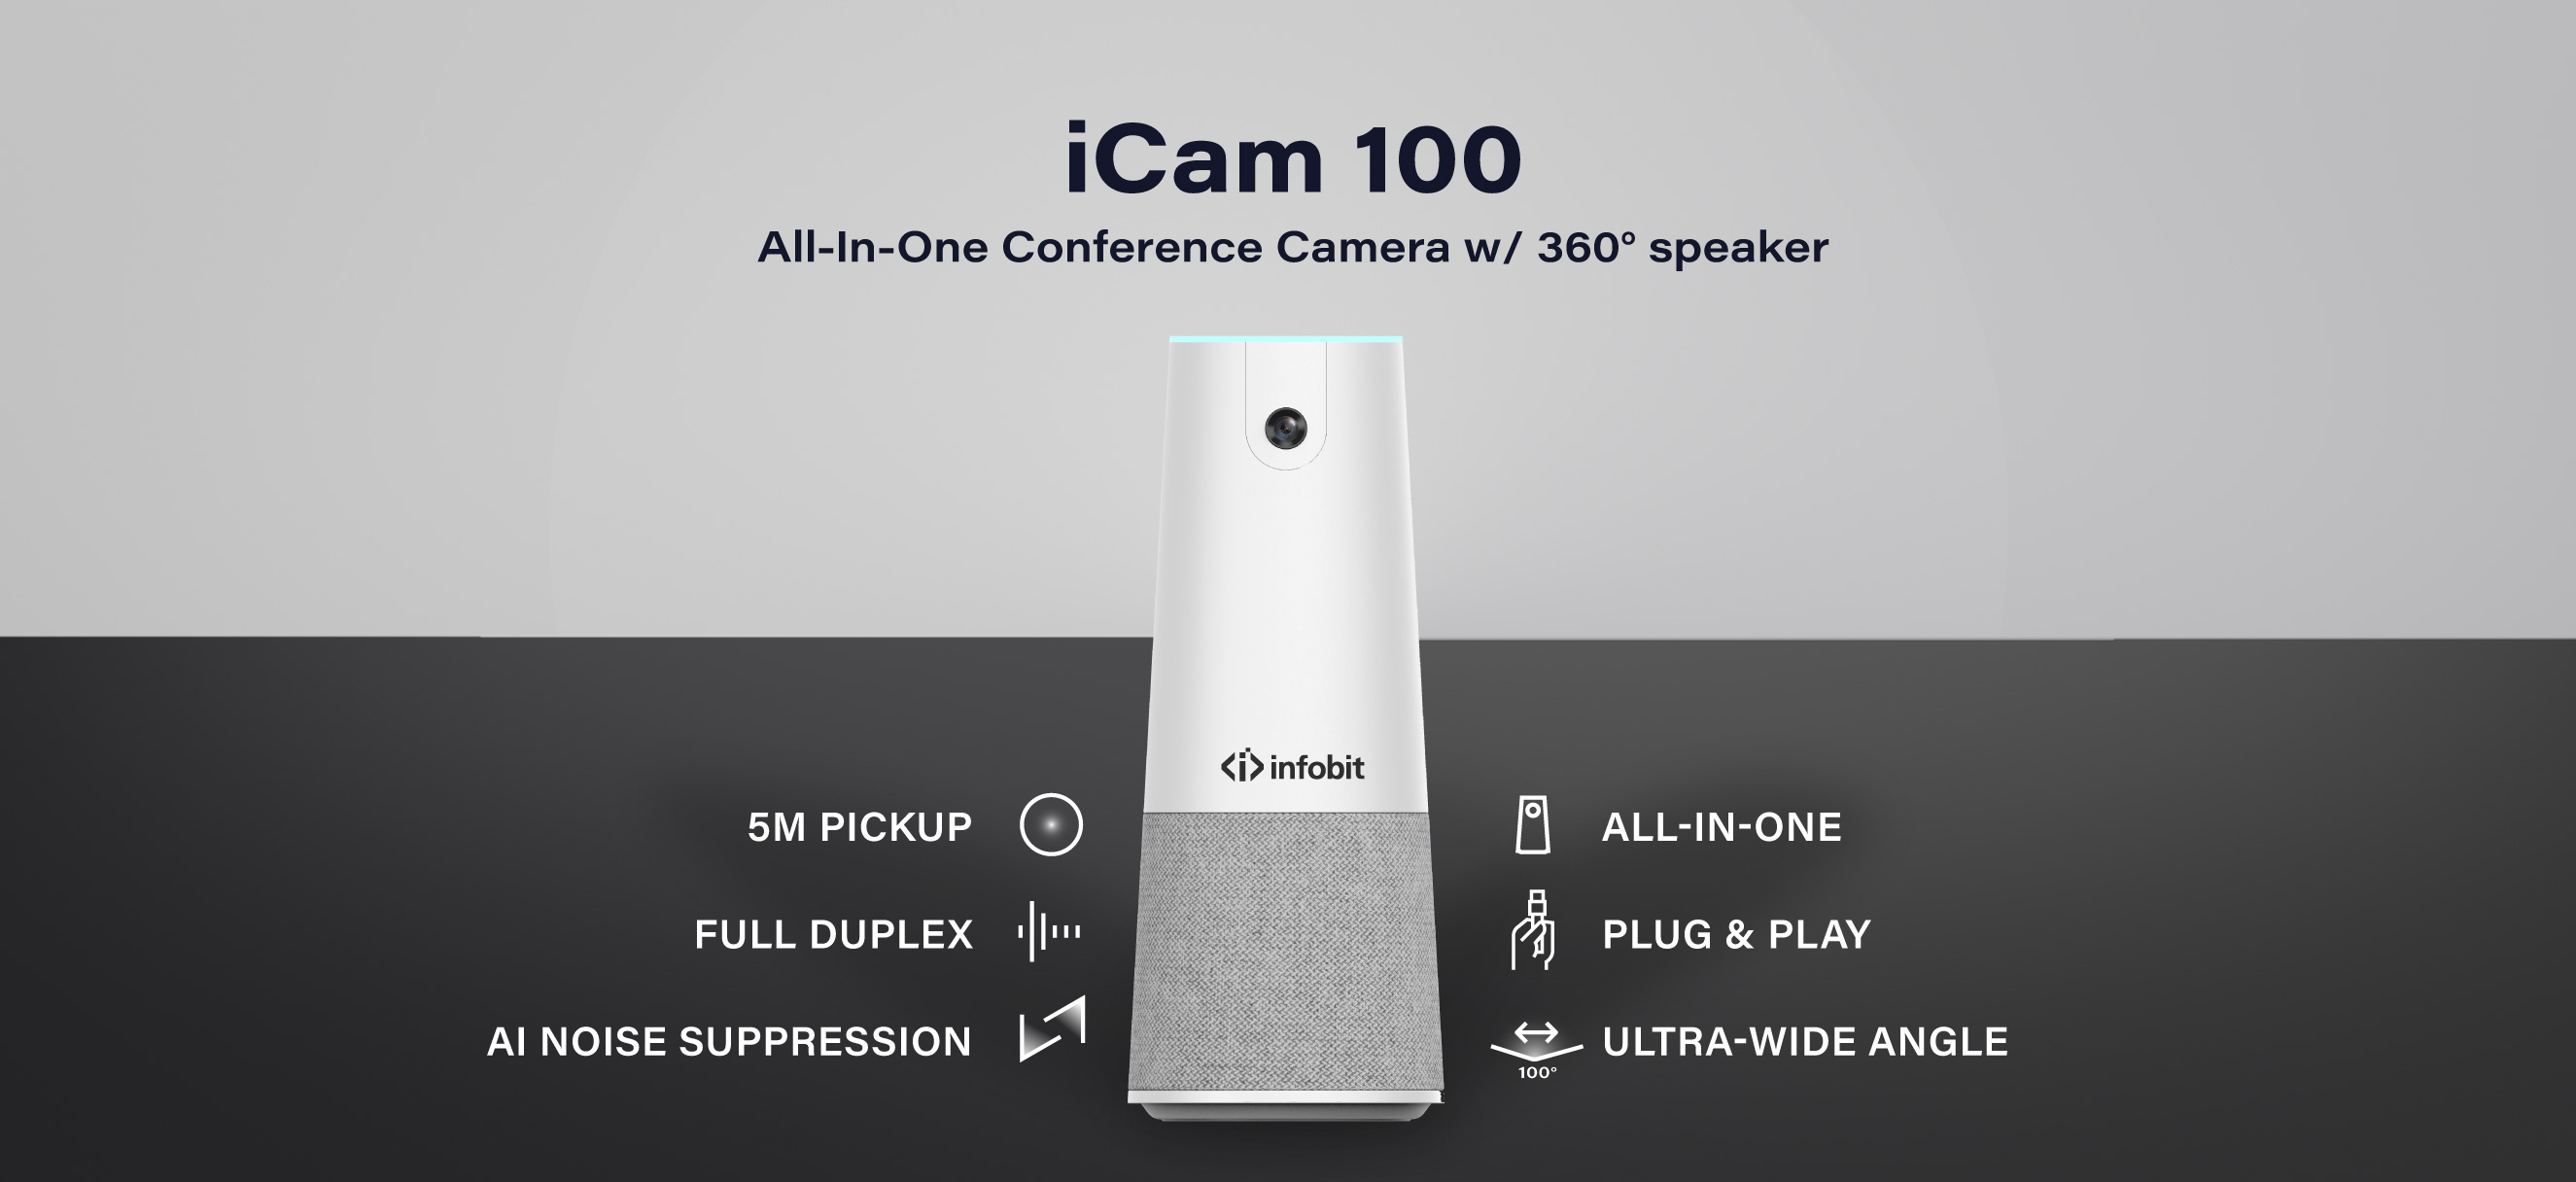 iCam 100: All-in-One conference Camera